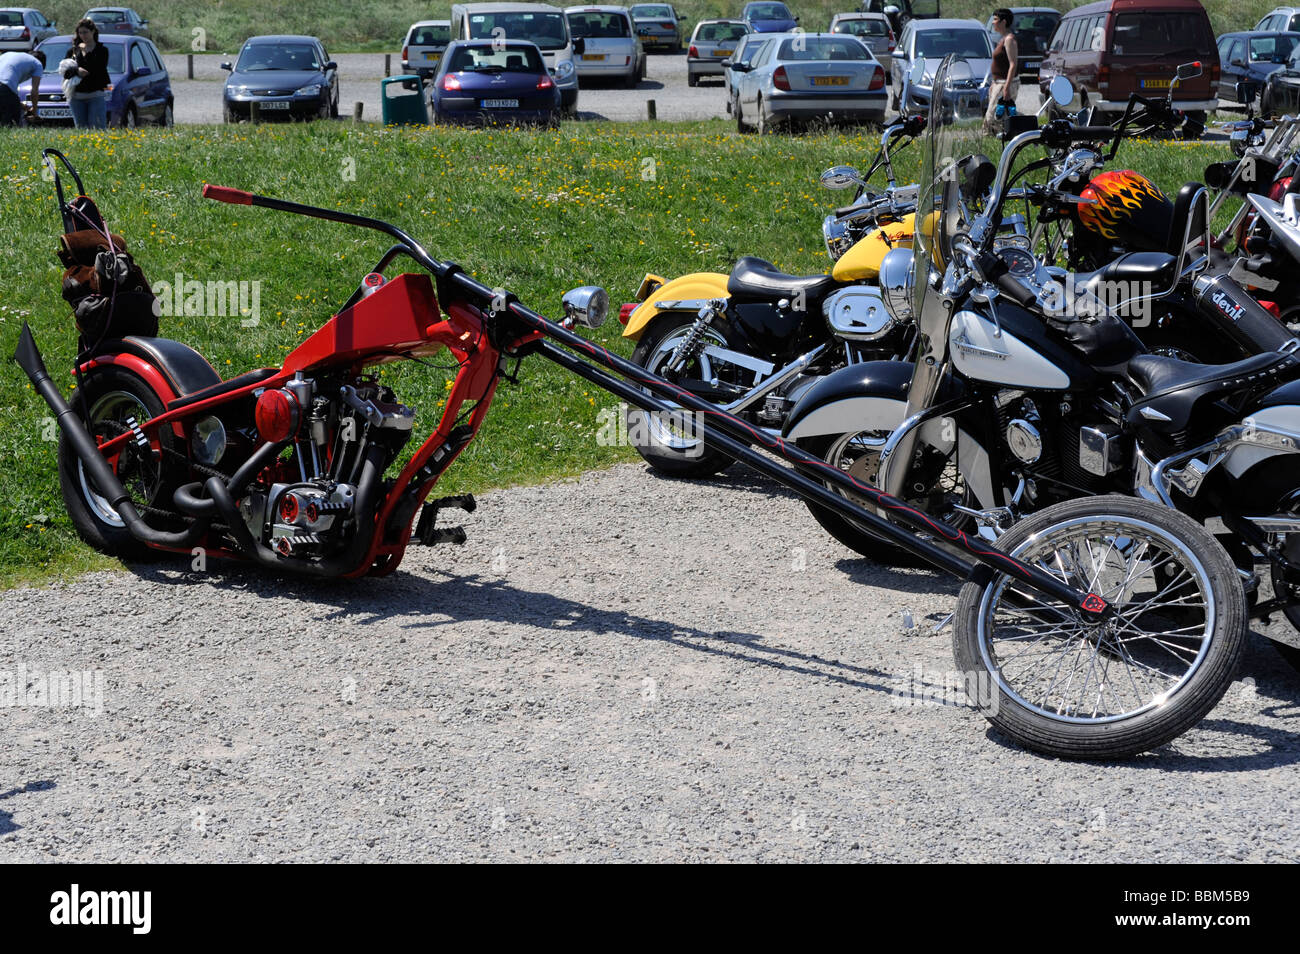 Harley Davidson Stock: Red Chopper Harley Davidson Stock Photo: 24414861